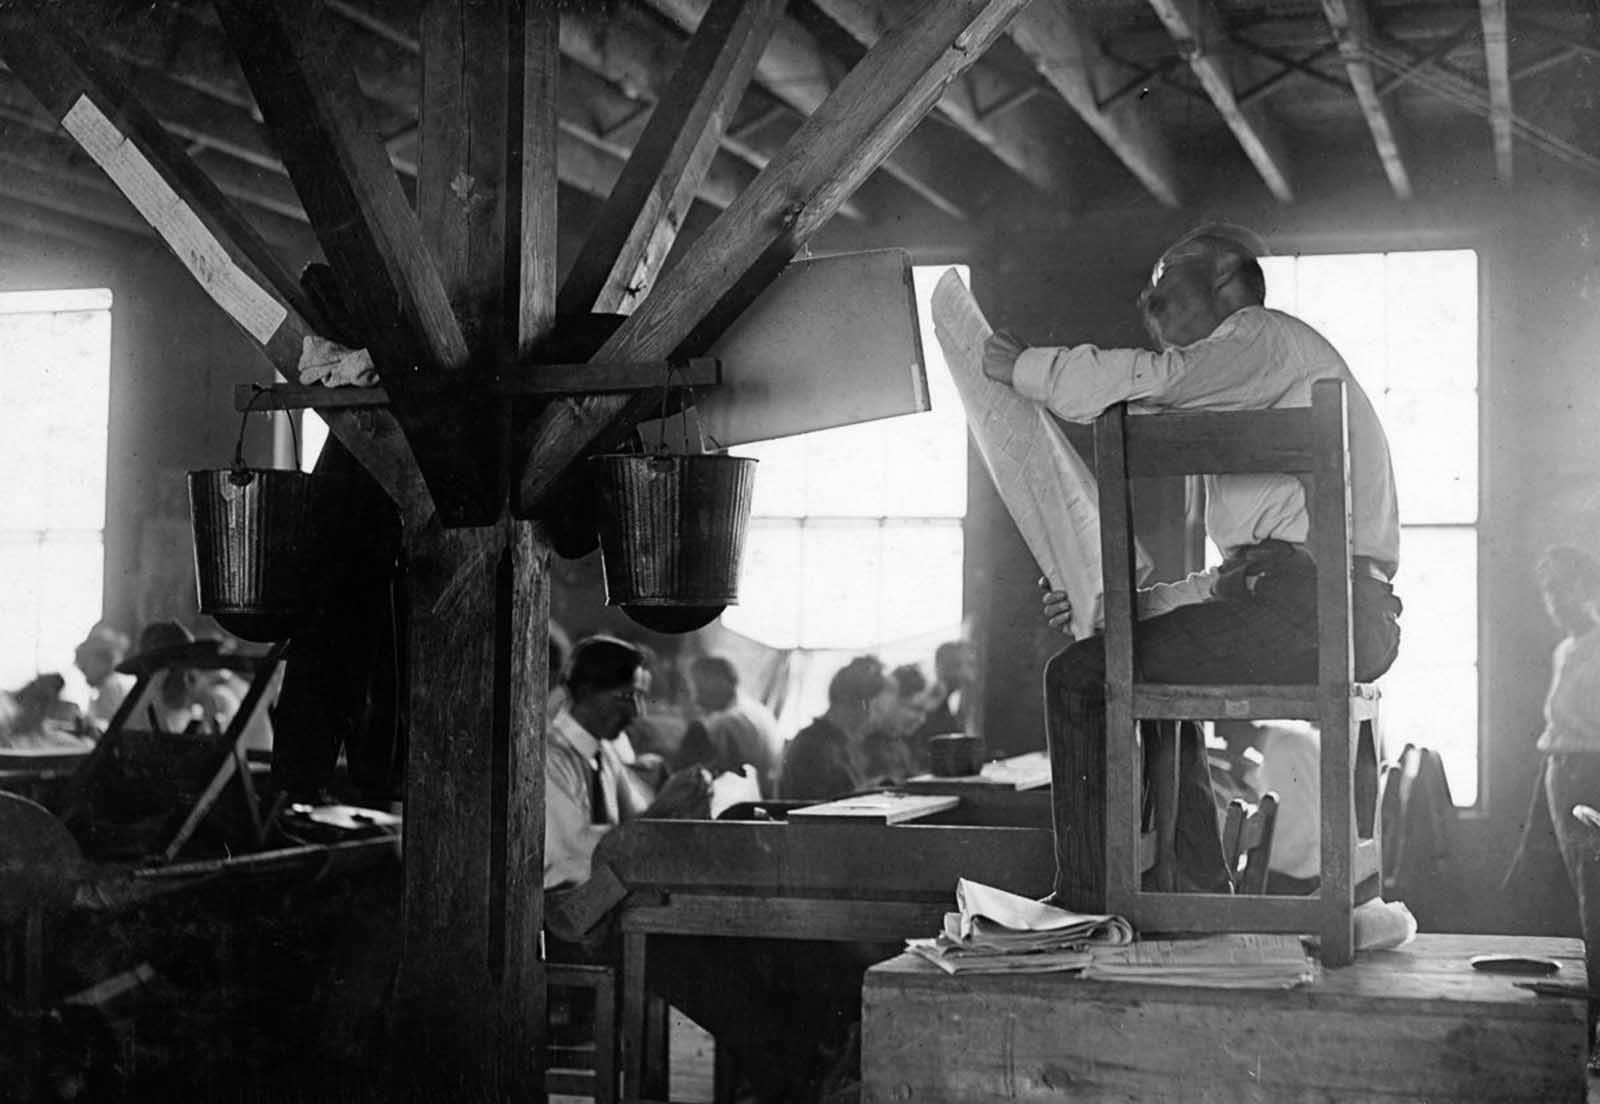 A lector in a Tampa, Florida cigar factory, 1909. La lectura (the reading) provided an education for the workers, but it also caused friction between the workers and the factory owners.